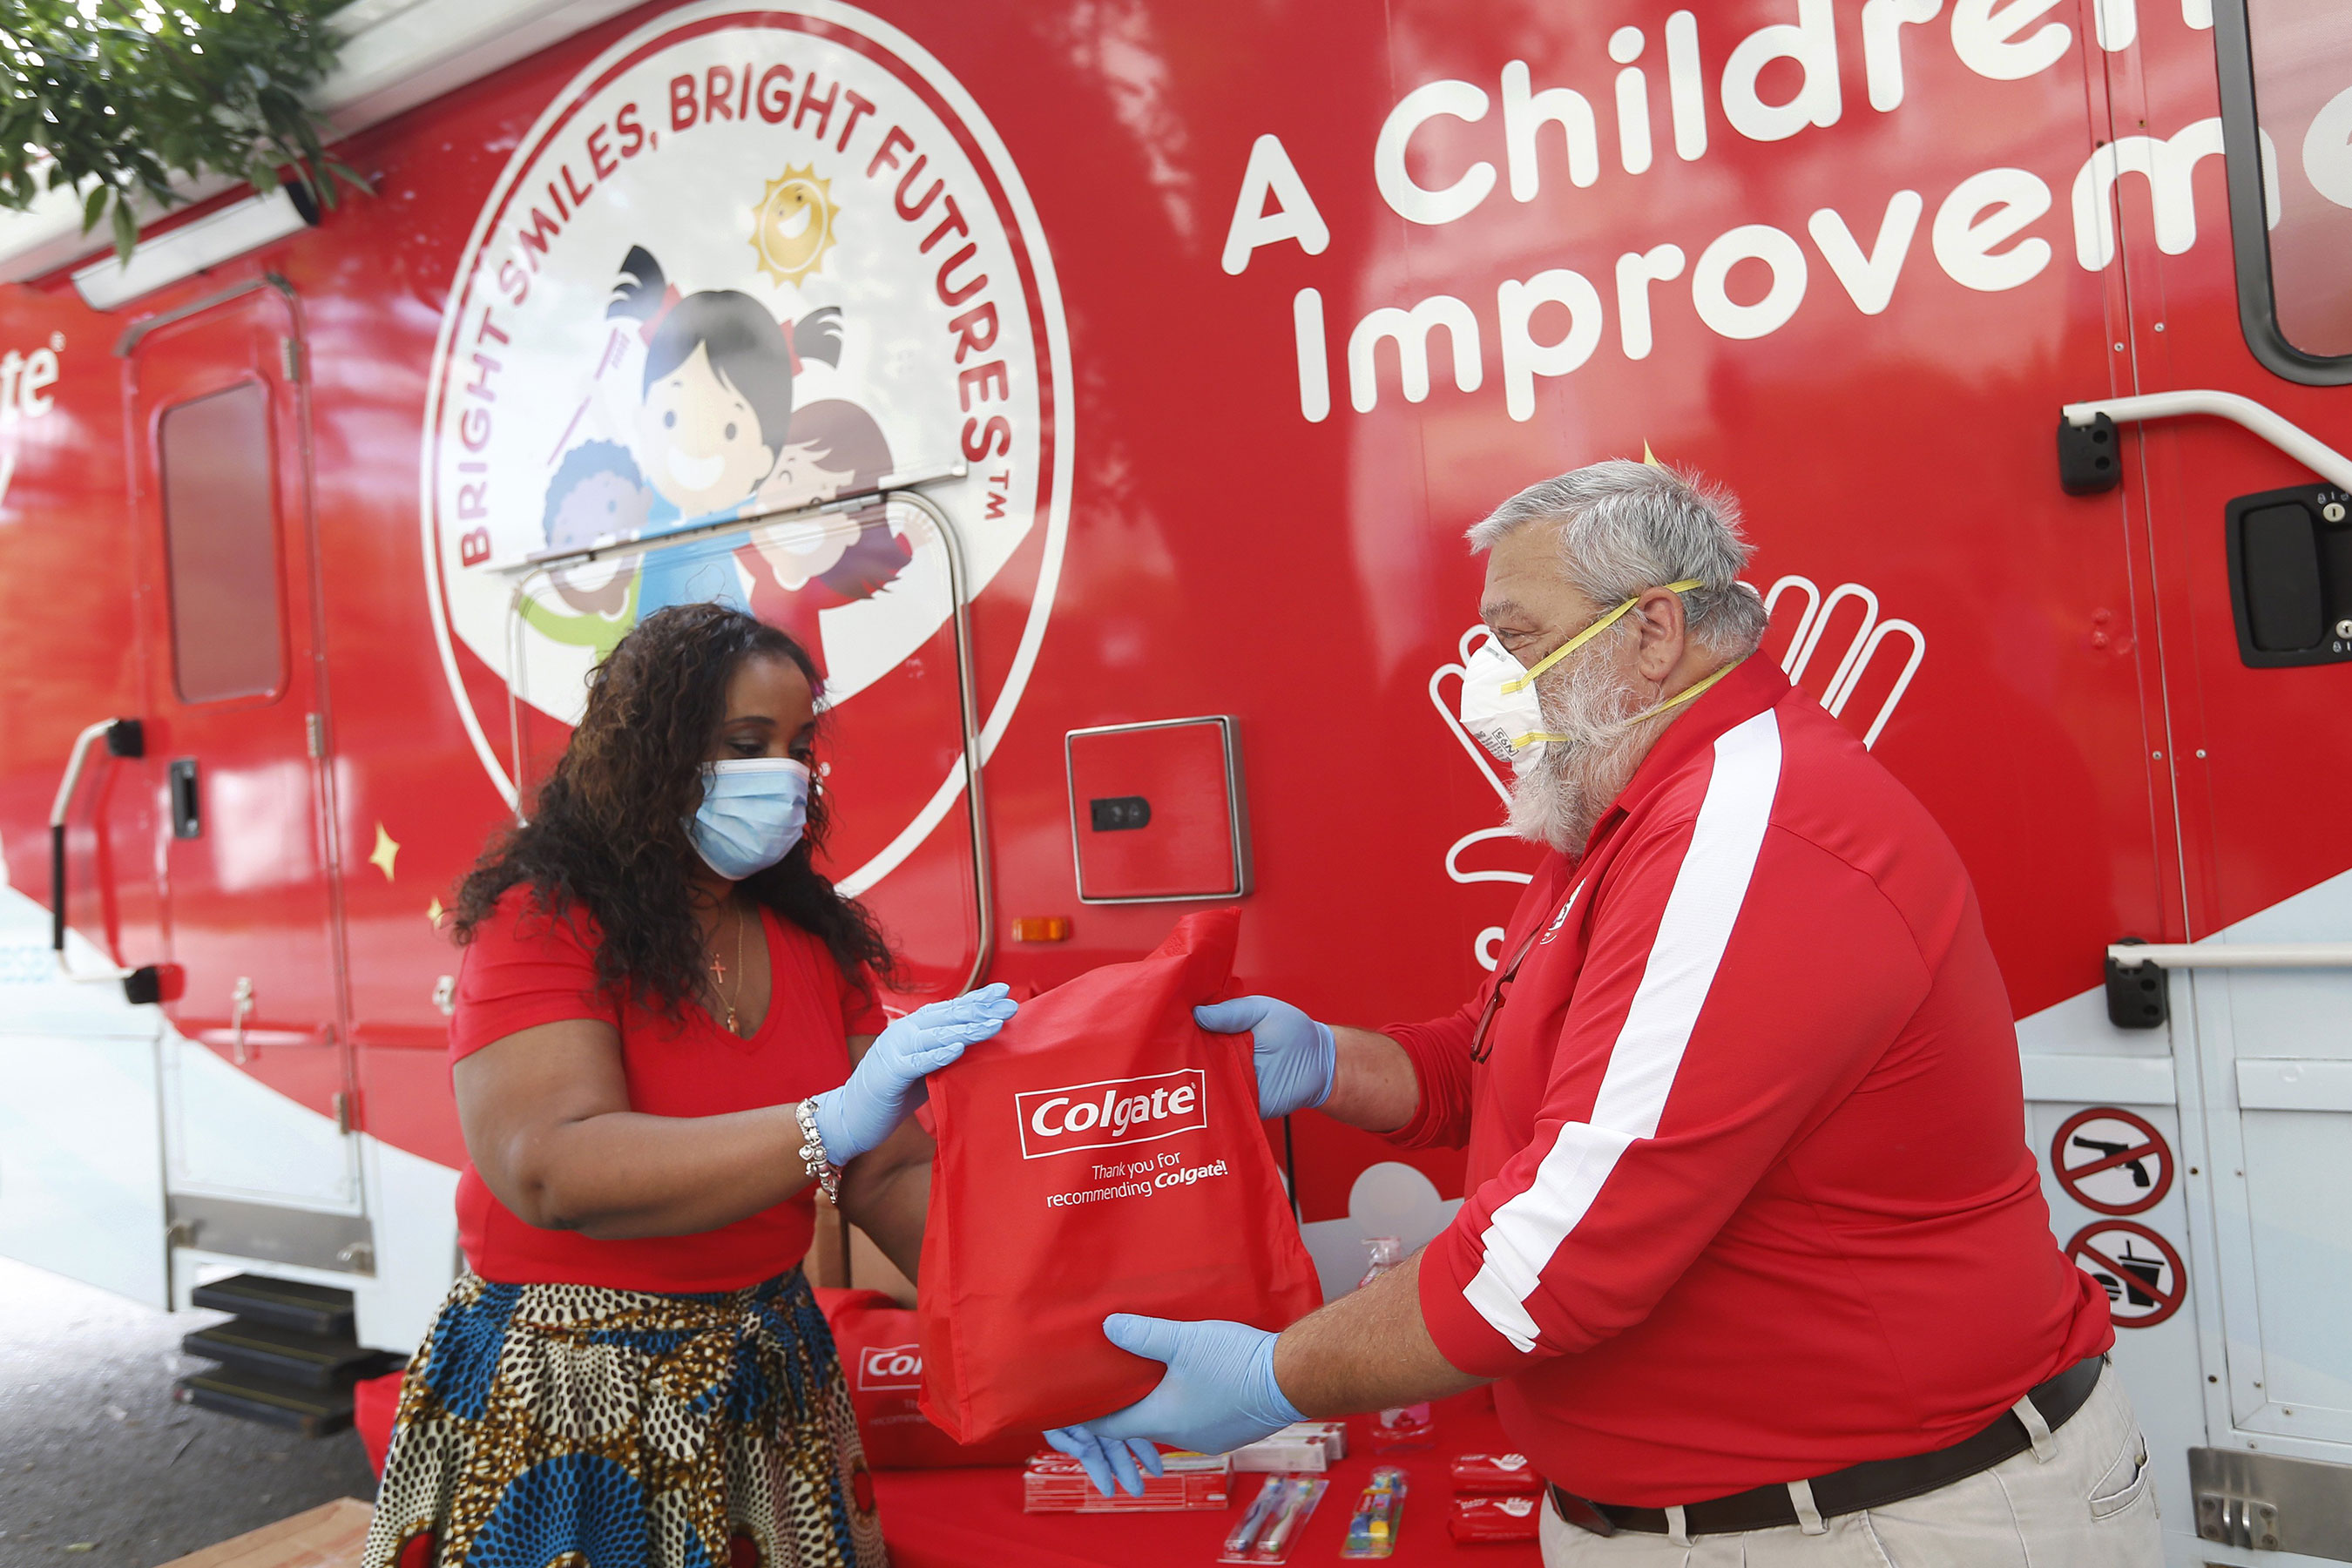 Colgate Bright Smiles, Bright Futures program delivers health and wellness kits to local communities across the U.S.